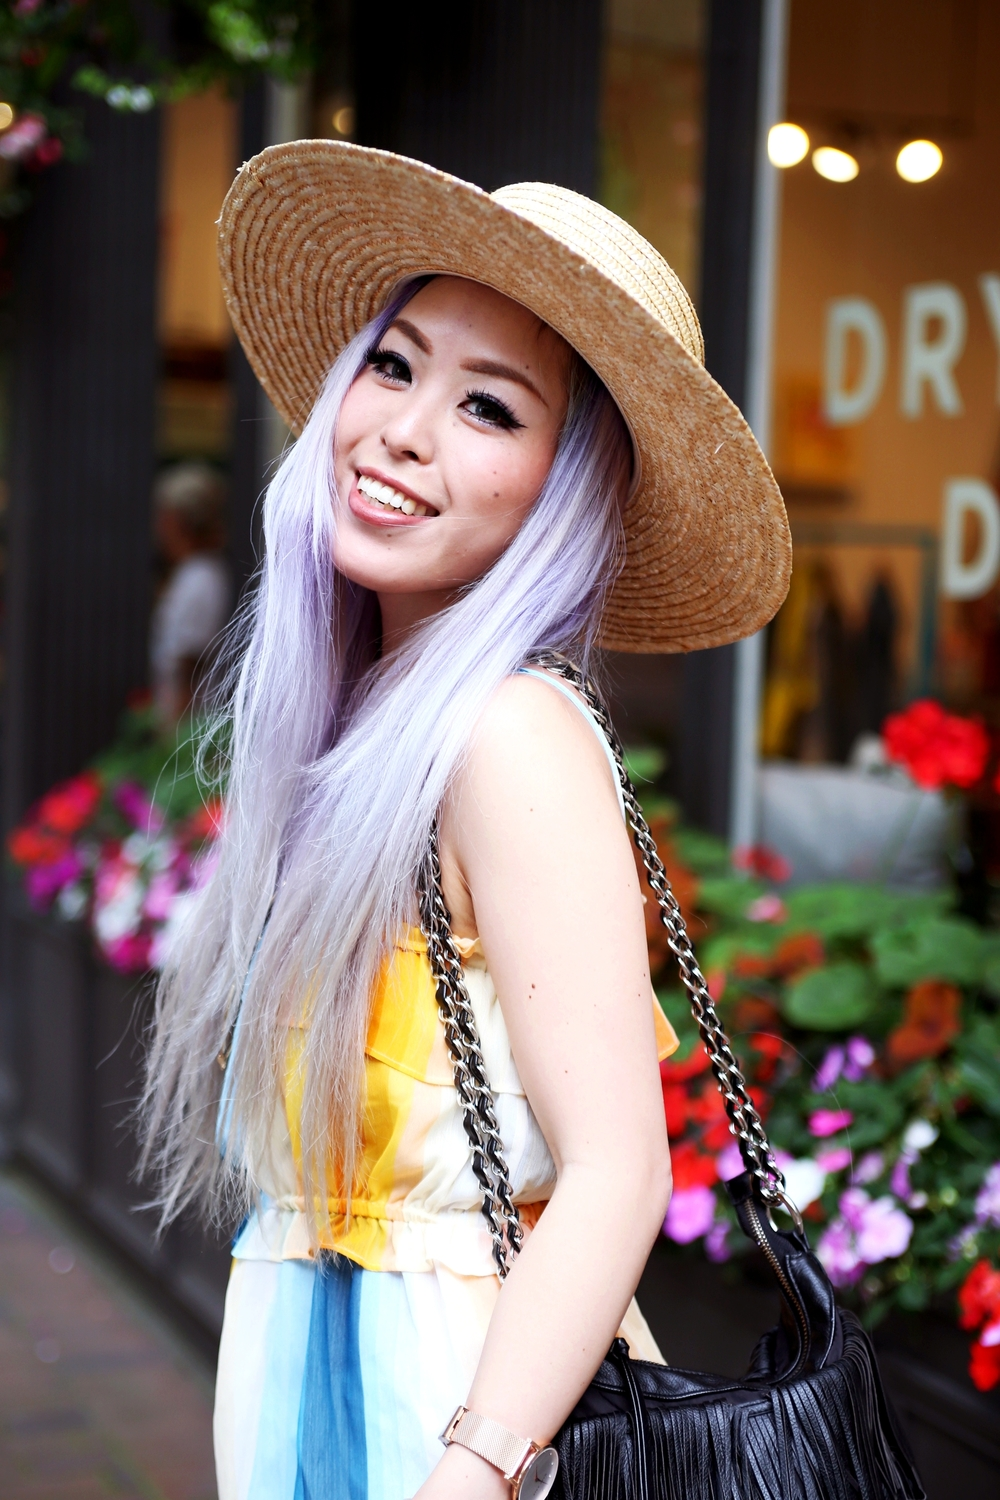 Smile is contagious_Lack Of Color The Spencer Wide Brimmed Hat_H&M chiffon top_Sincerely Jules Stone Cut Off shorts_Fringe Bag_JustFab Red Fringe Sandals_Marc Bale Rose Gold Watch_Lavender Hair_Aikas Smile is contageious Love Closet_Seattle Fashion Blogger from Japan